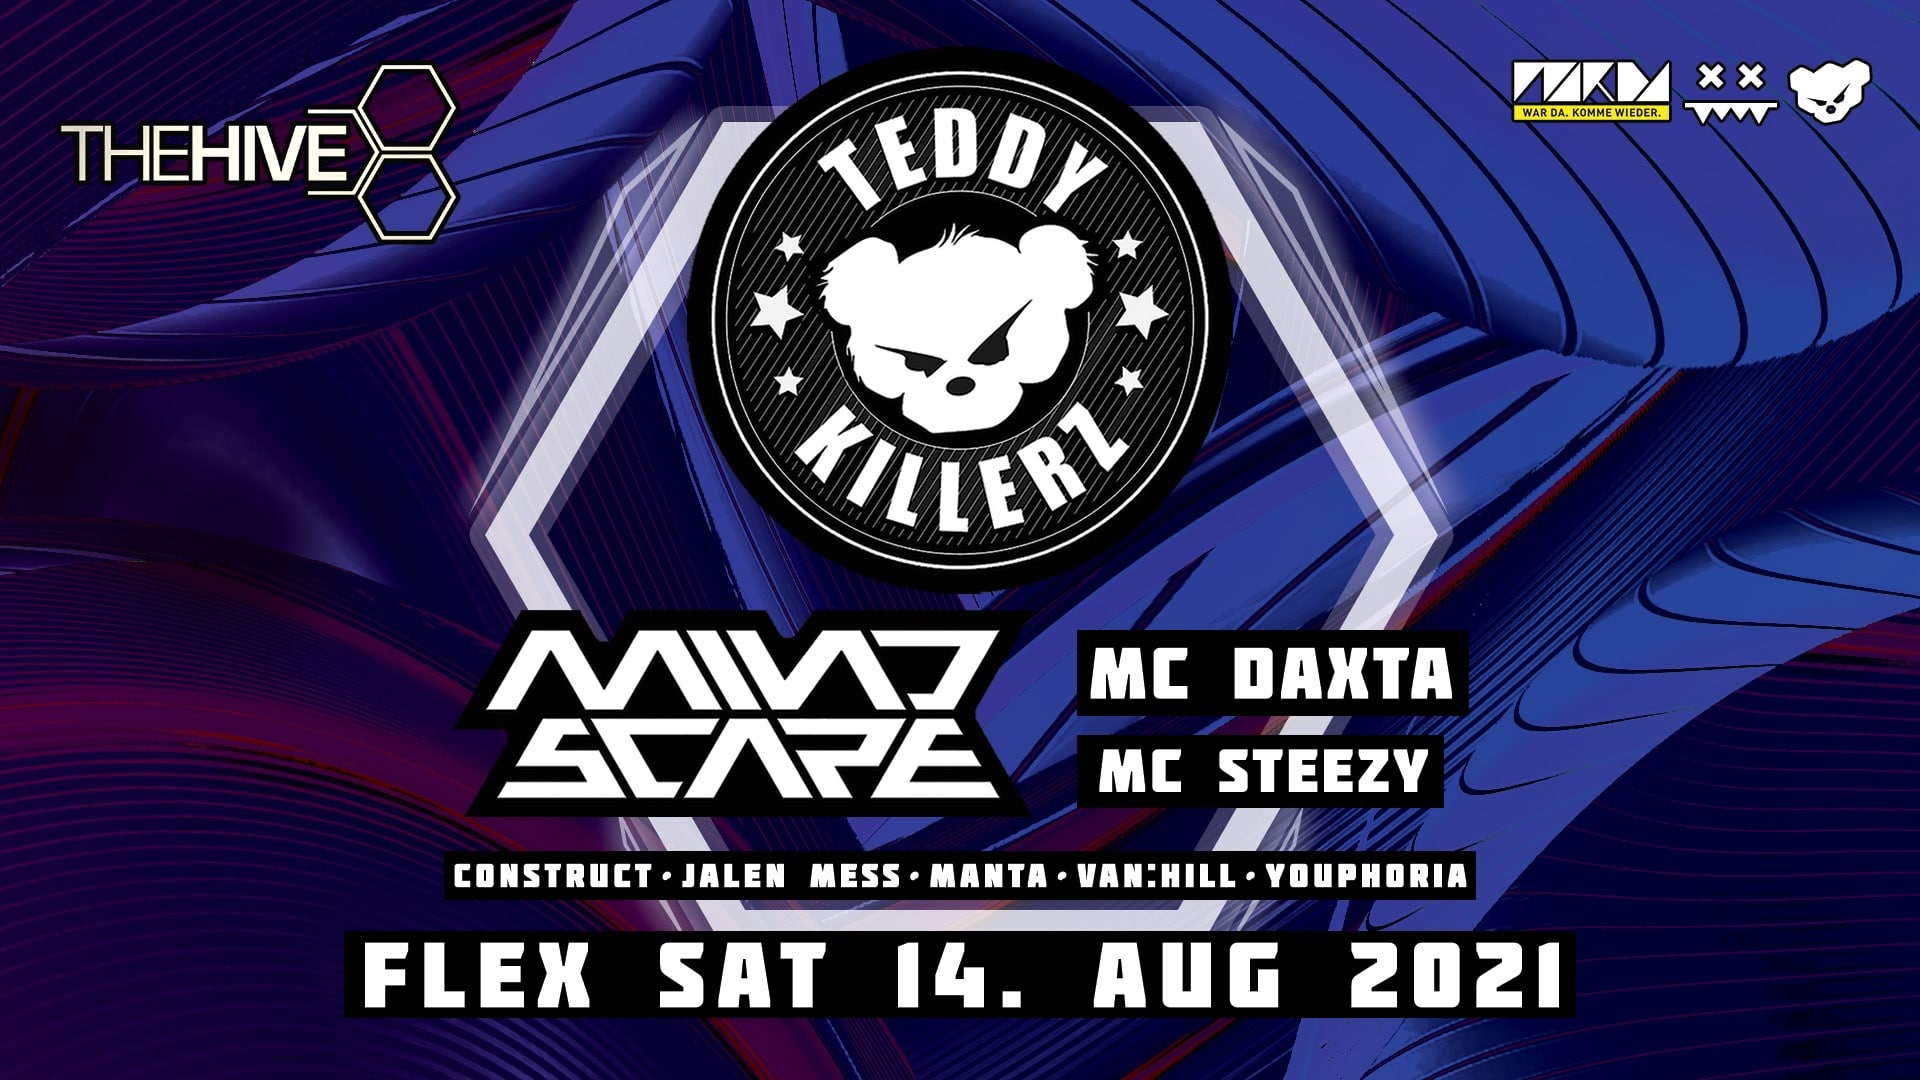 Events Wien: THE HIVE pres. Teddy Killerz & Mindscape